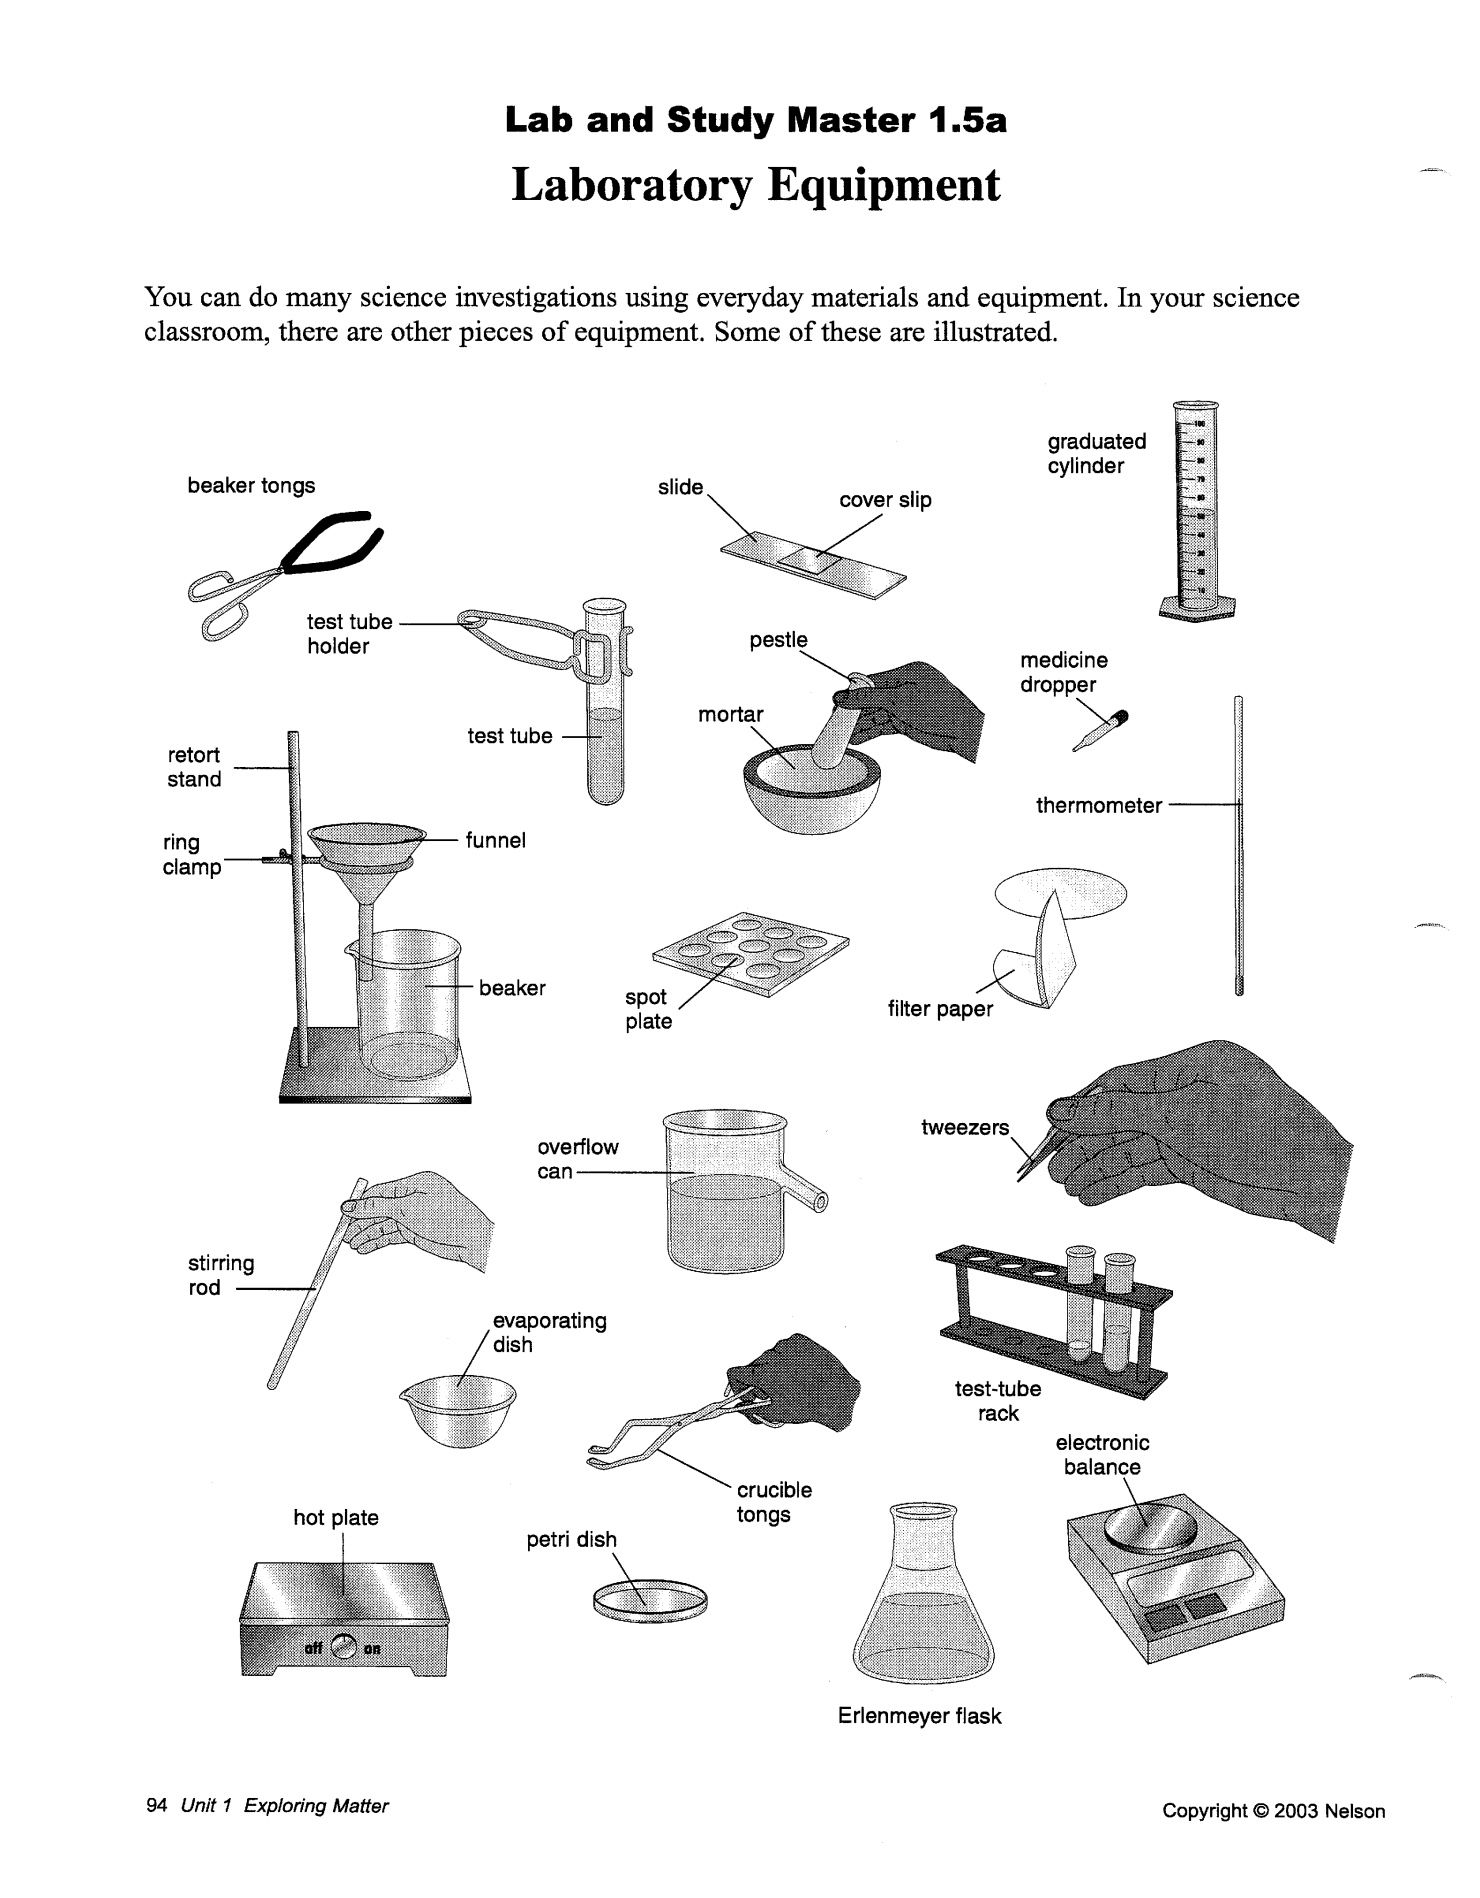 hight resolution of Laboratory Equipment - Names for some common pieces - Monday